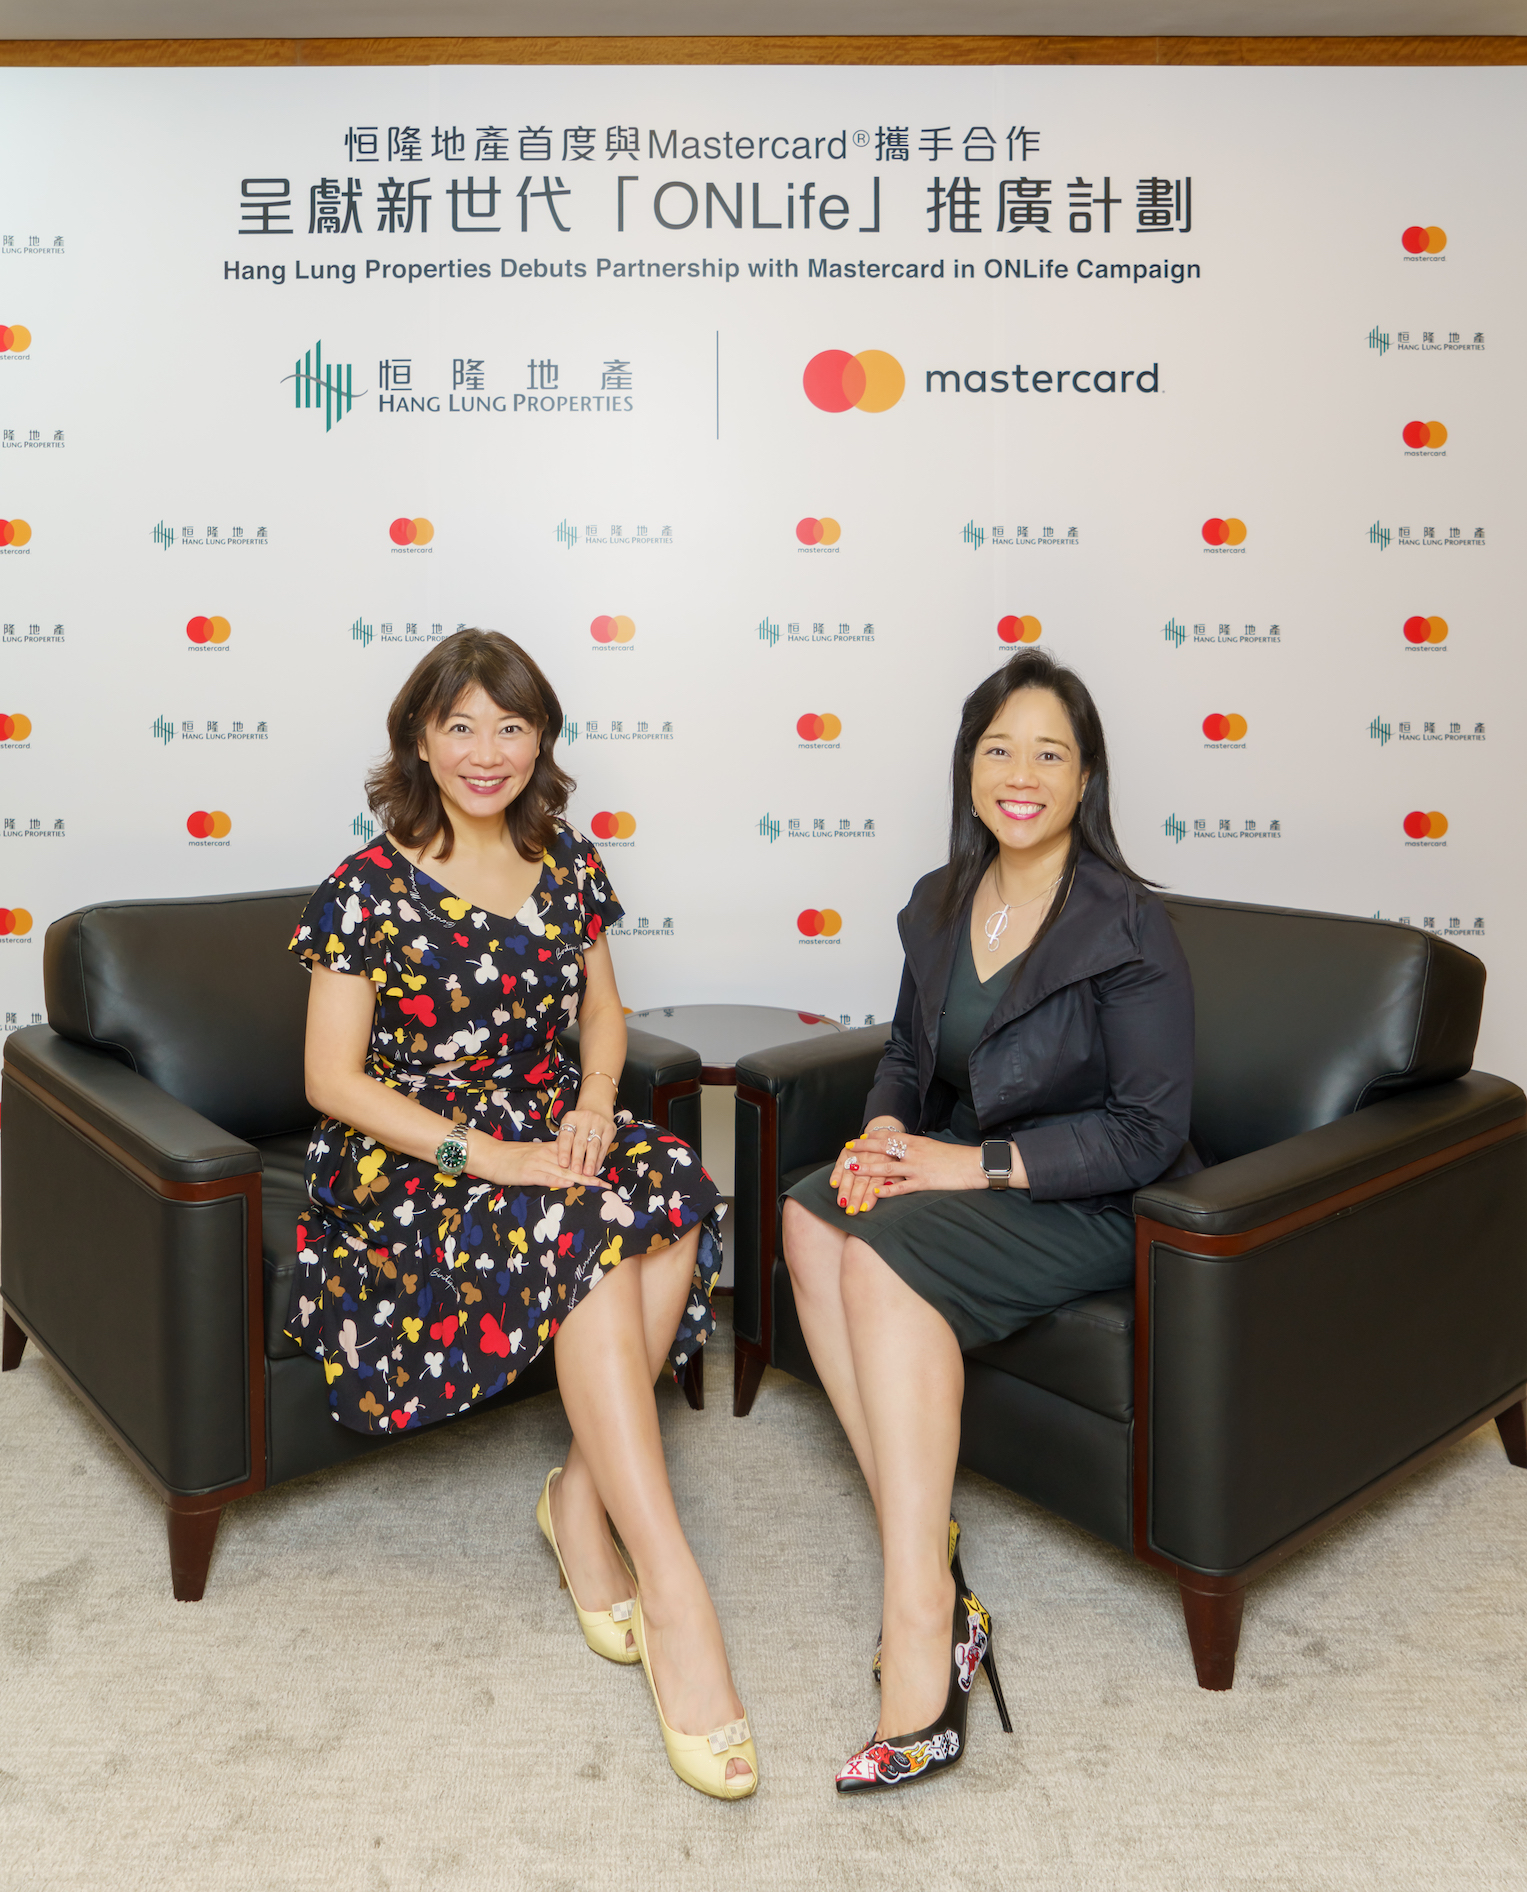 Hang Lung Properties Debuts Partnership with Mastercard in ONLife Campaign